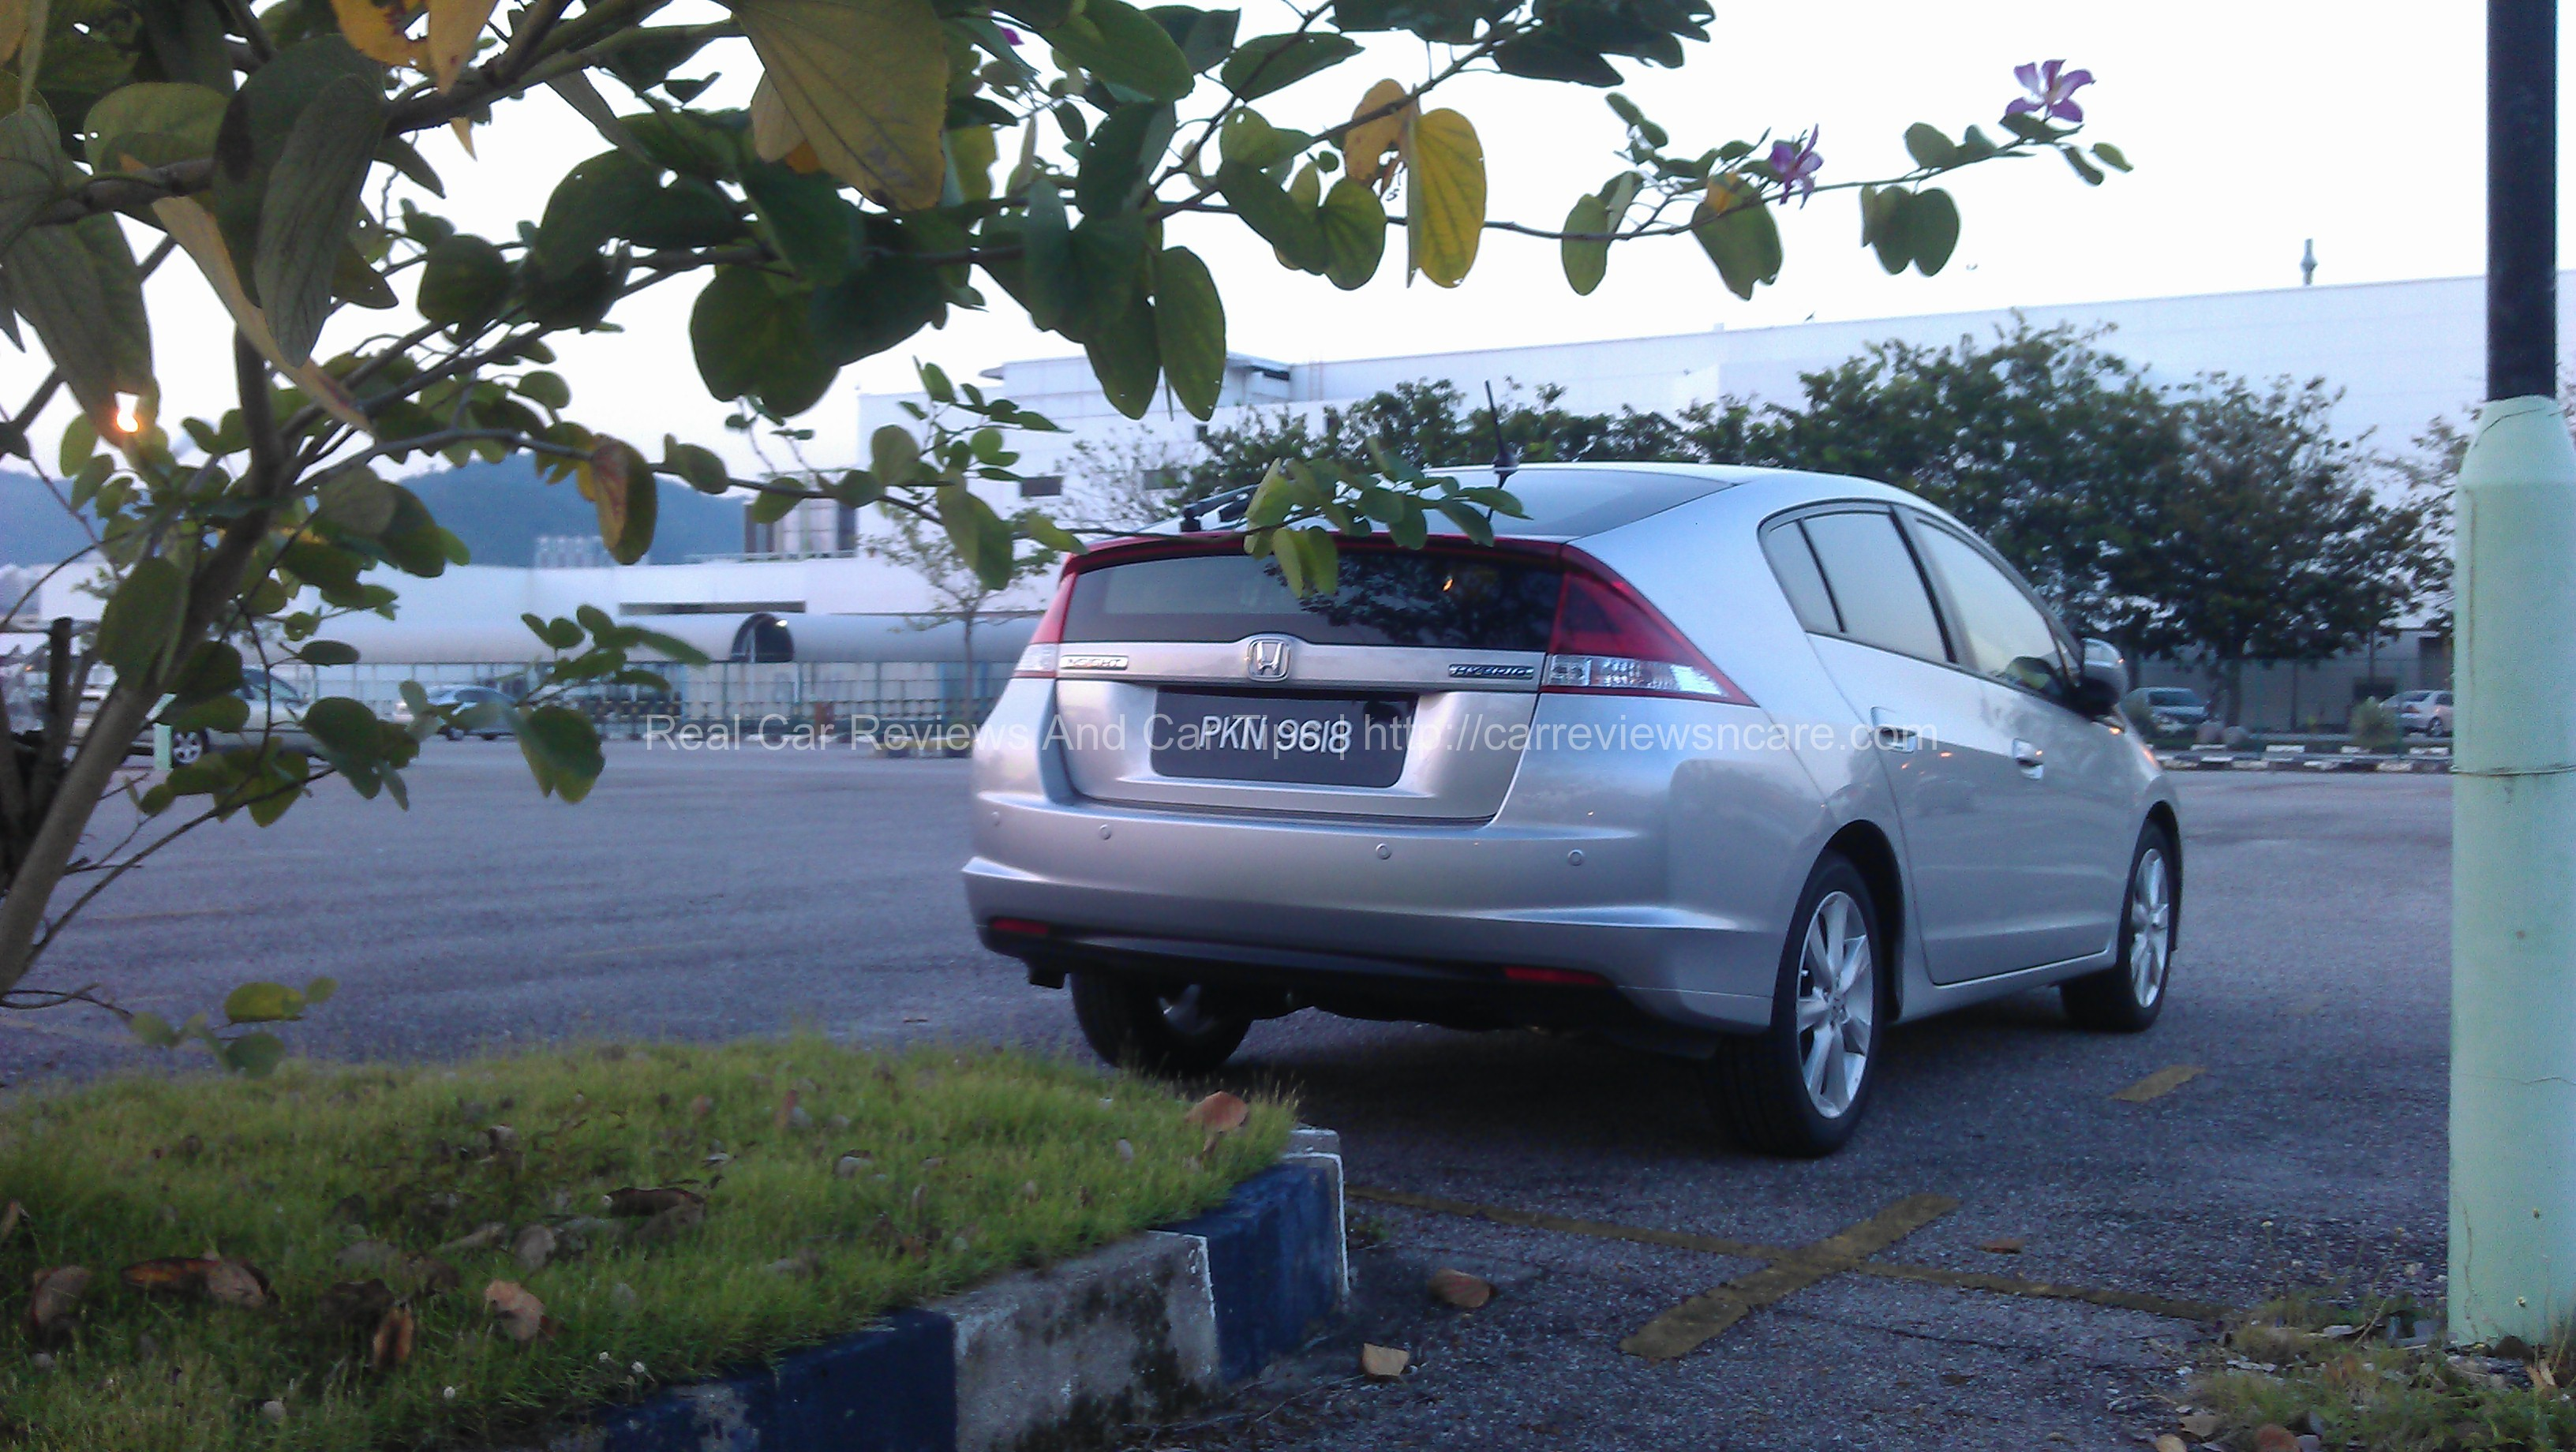 Honda Insight 1 3l Test Drive Review On Jelutong Express Highway